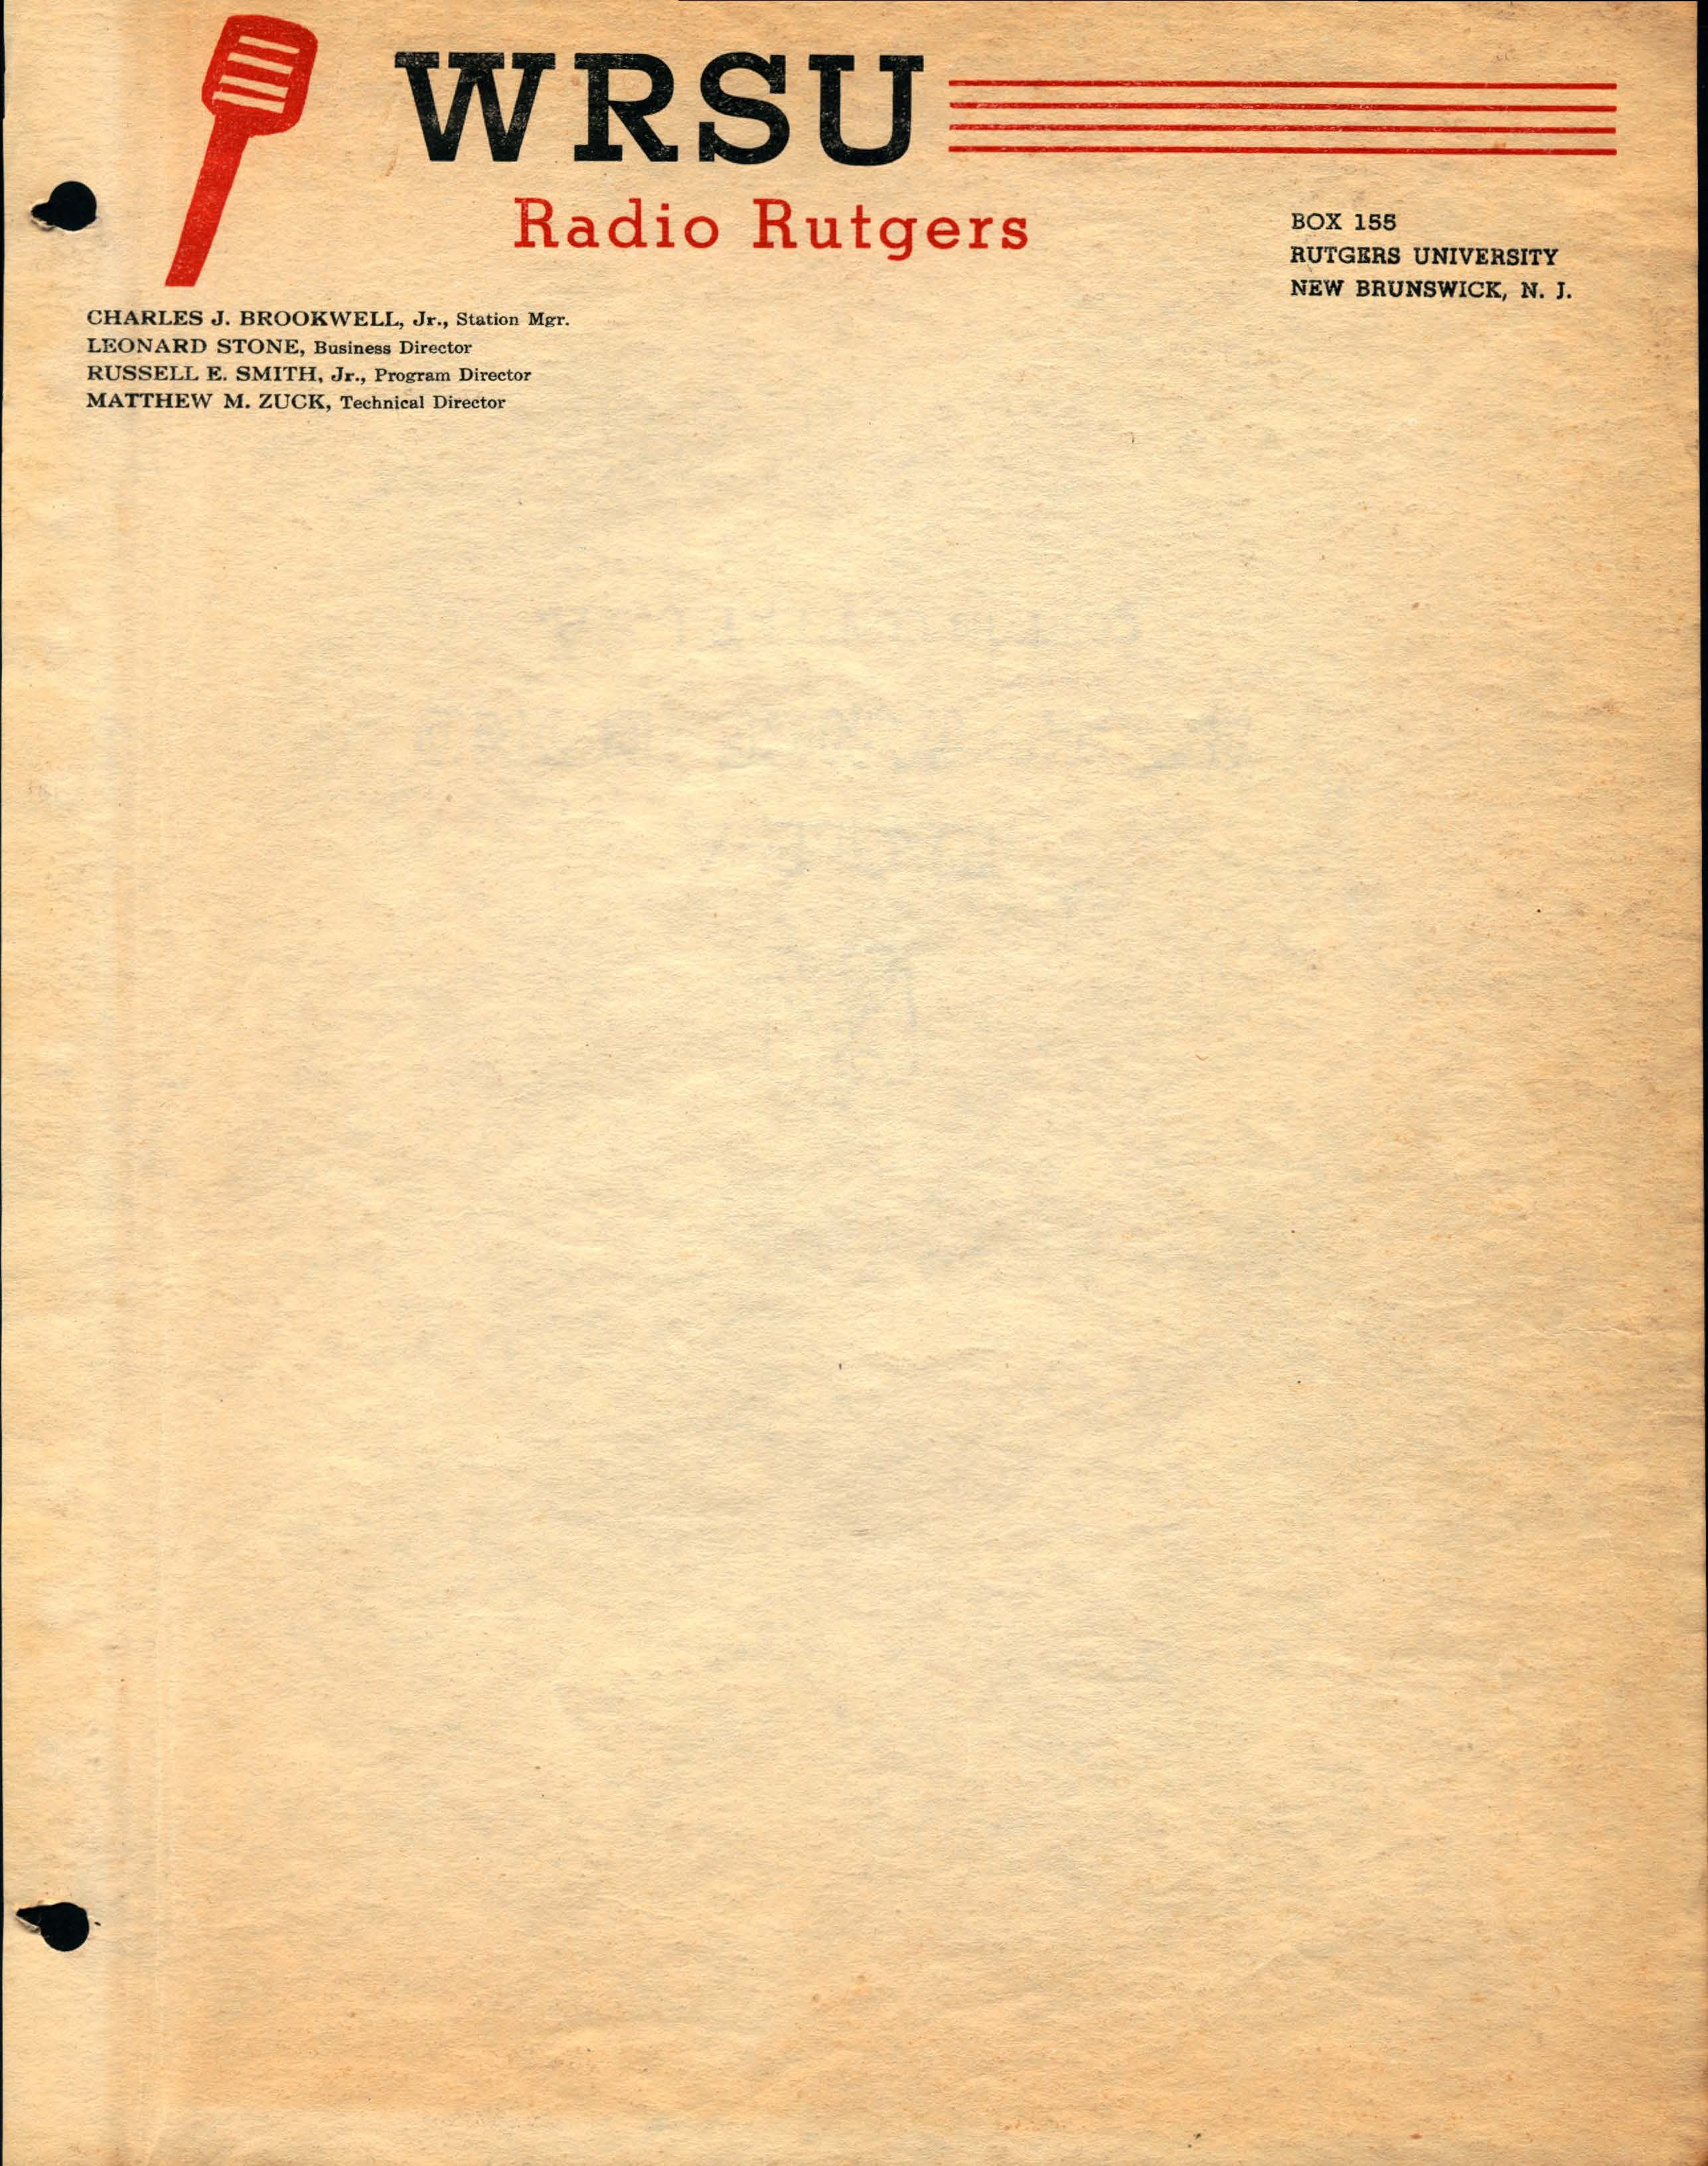 1948-WRSU Play Script - Cover Page